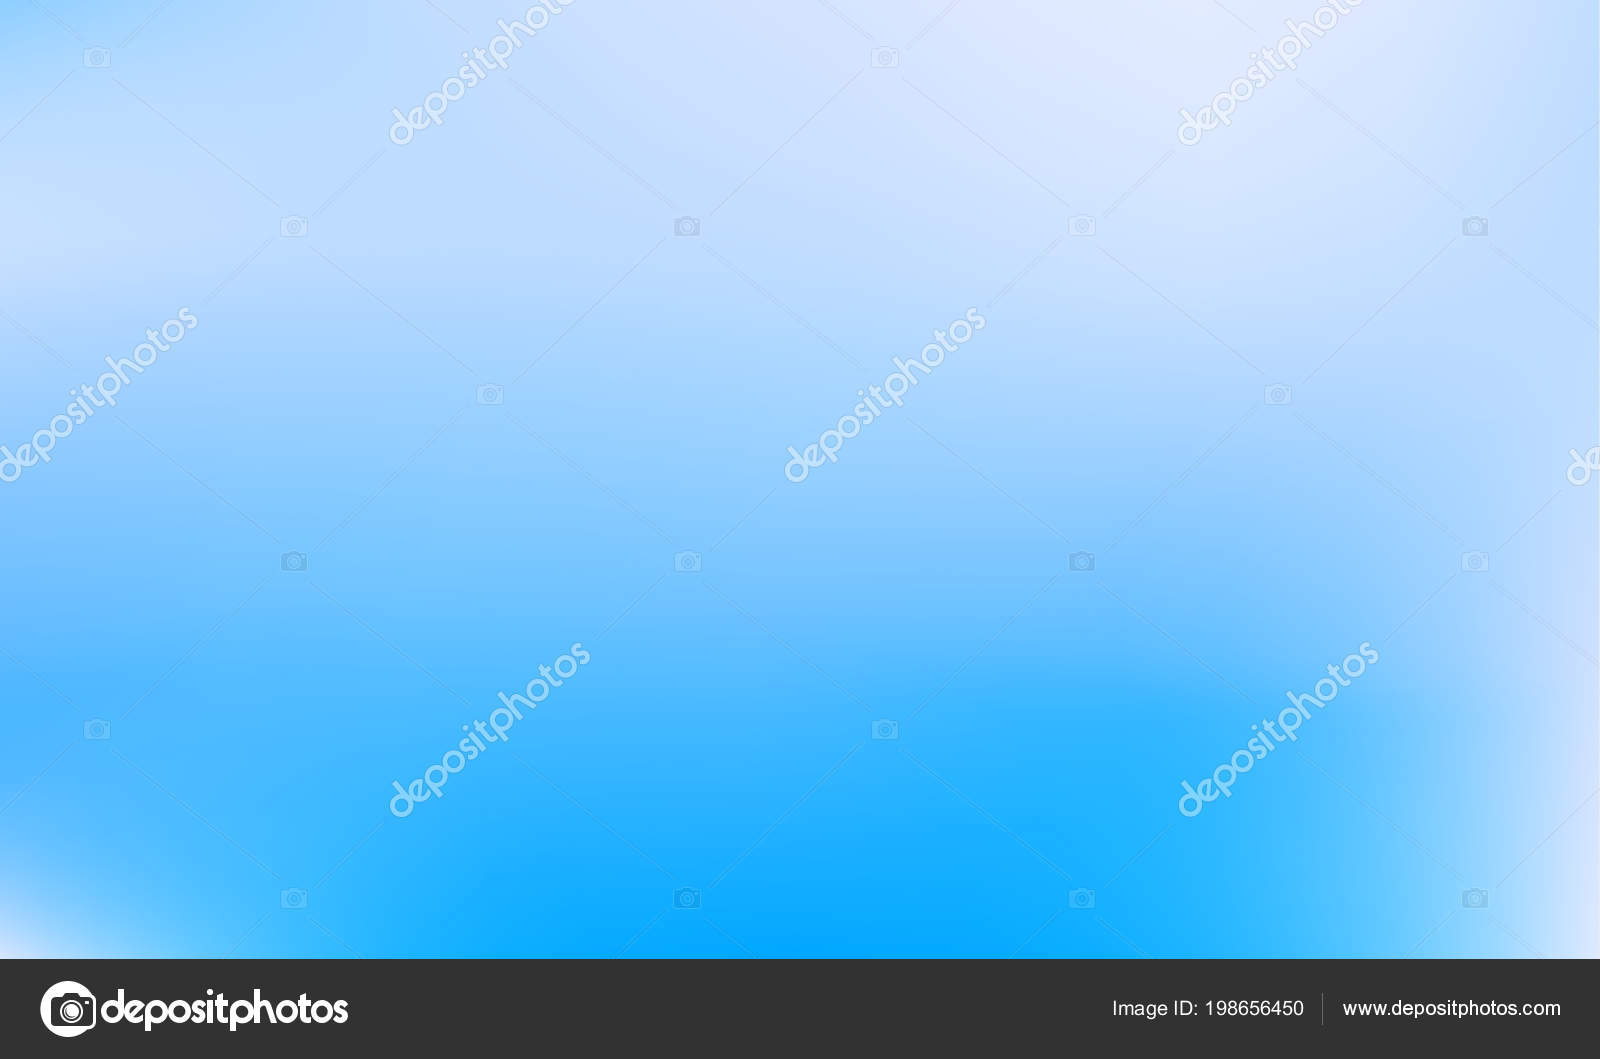 Vibrant Light Blue Gradient Background Style 80s 90s